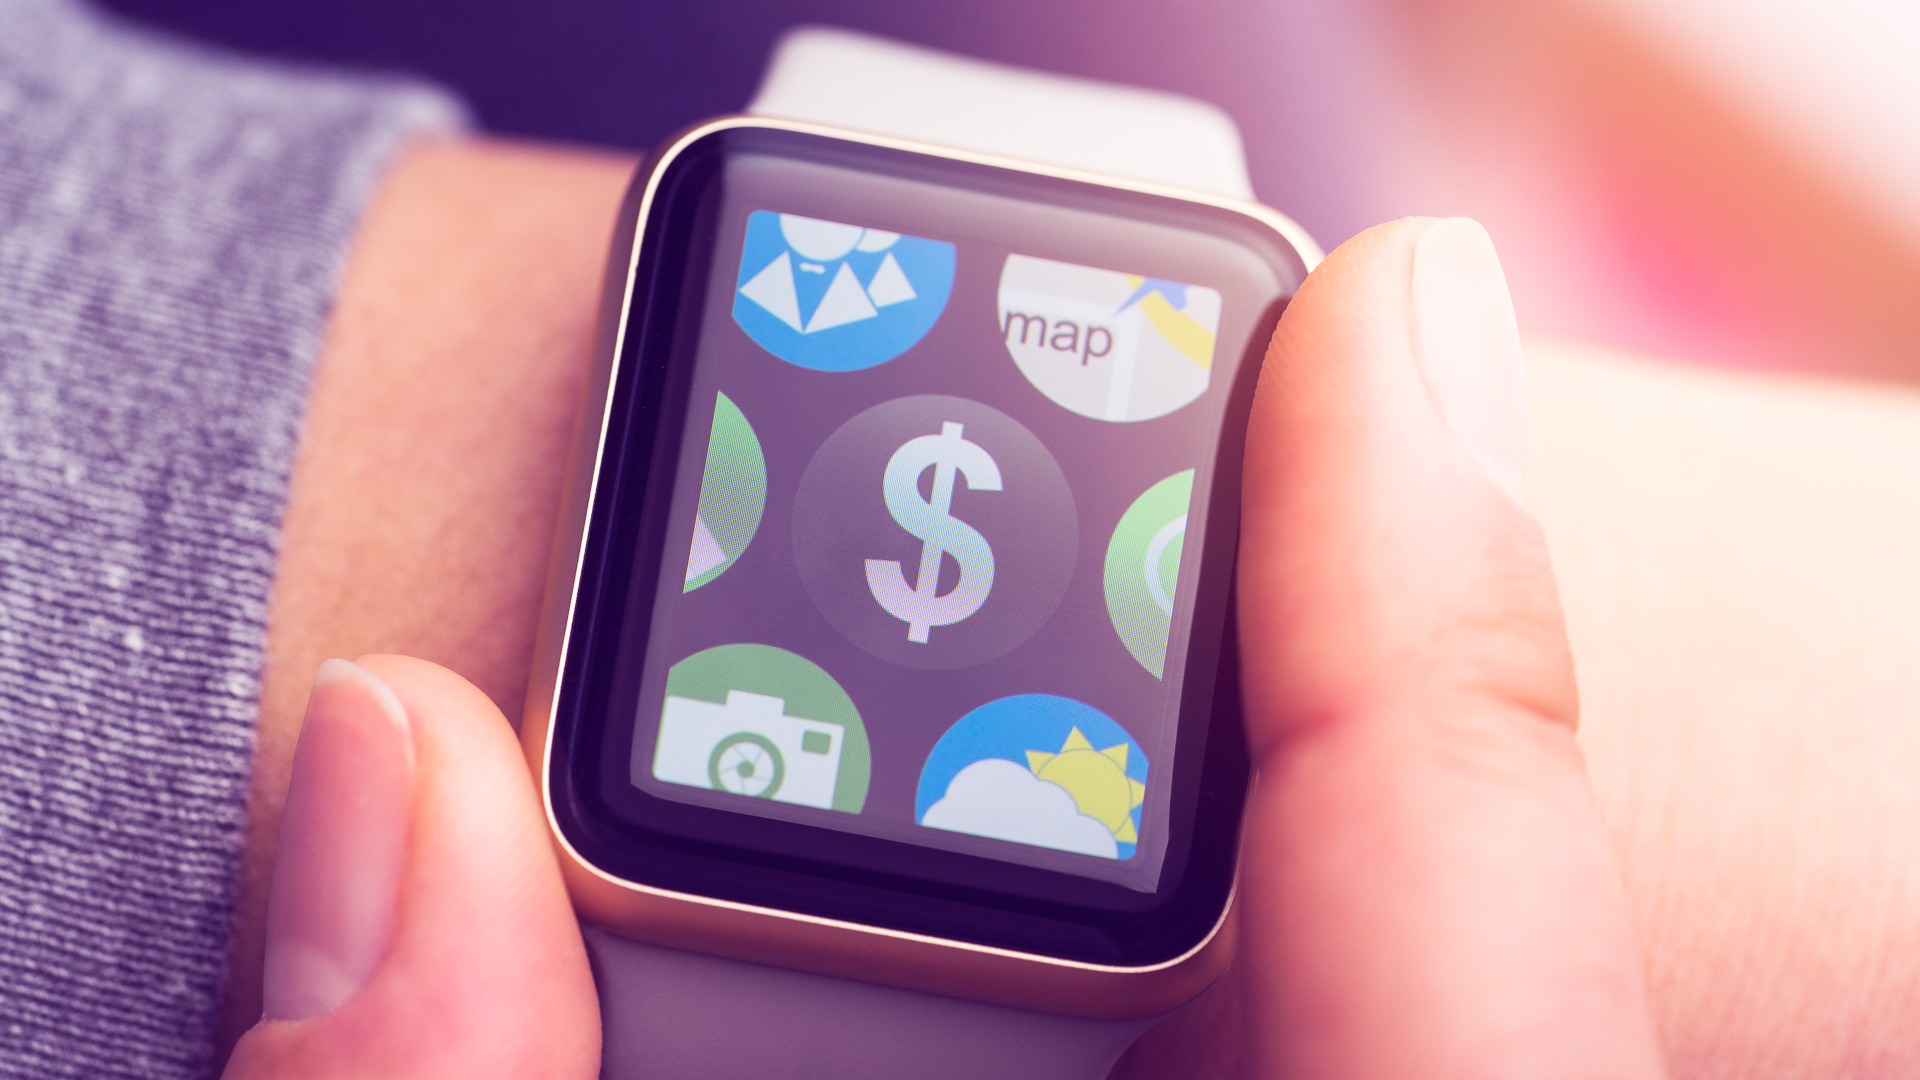 Top 4 Budgeting Apps You Should Consider